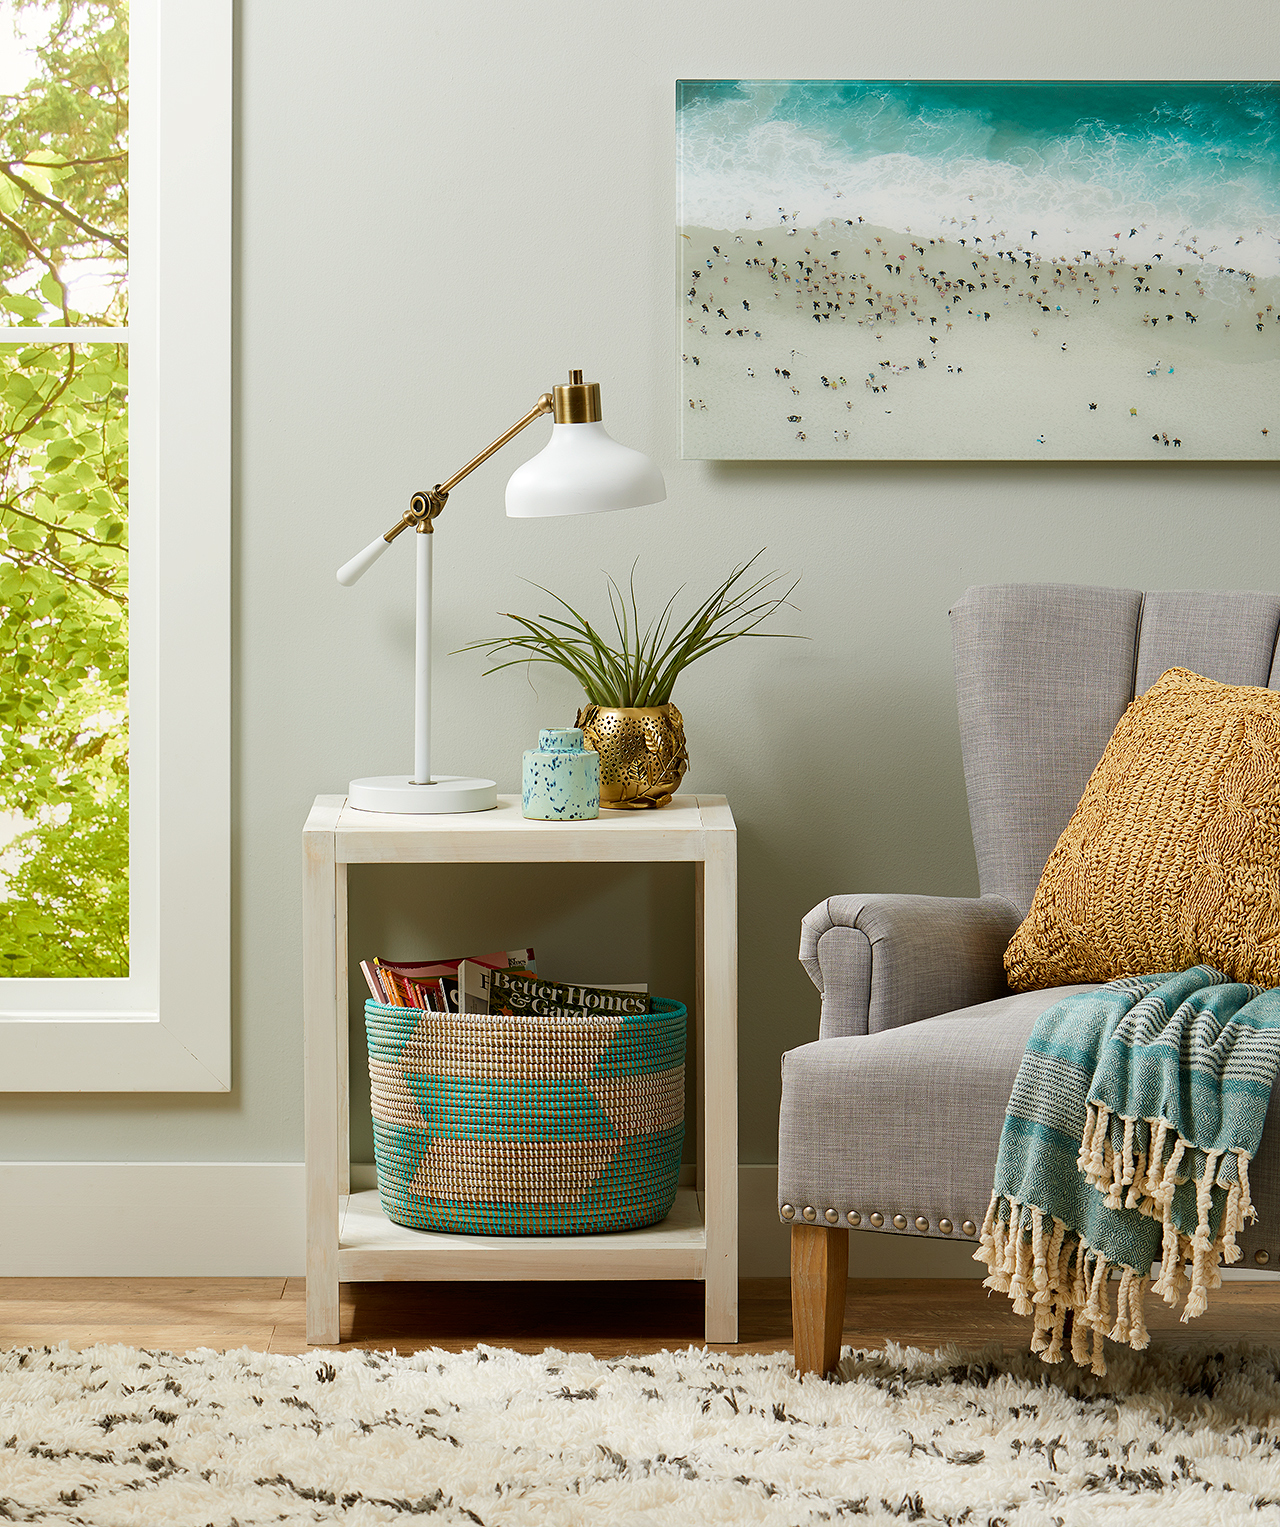 DIY side table with chair and artwork